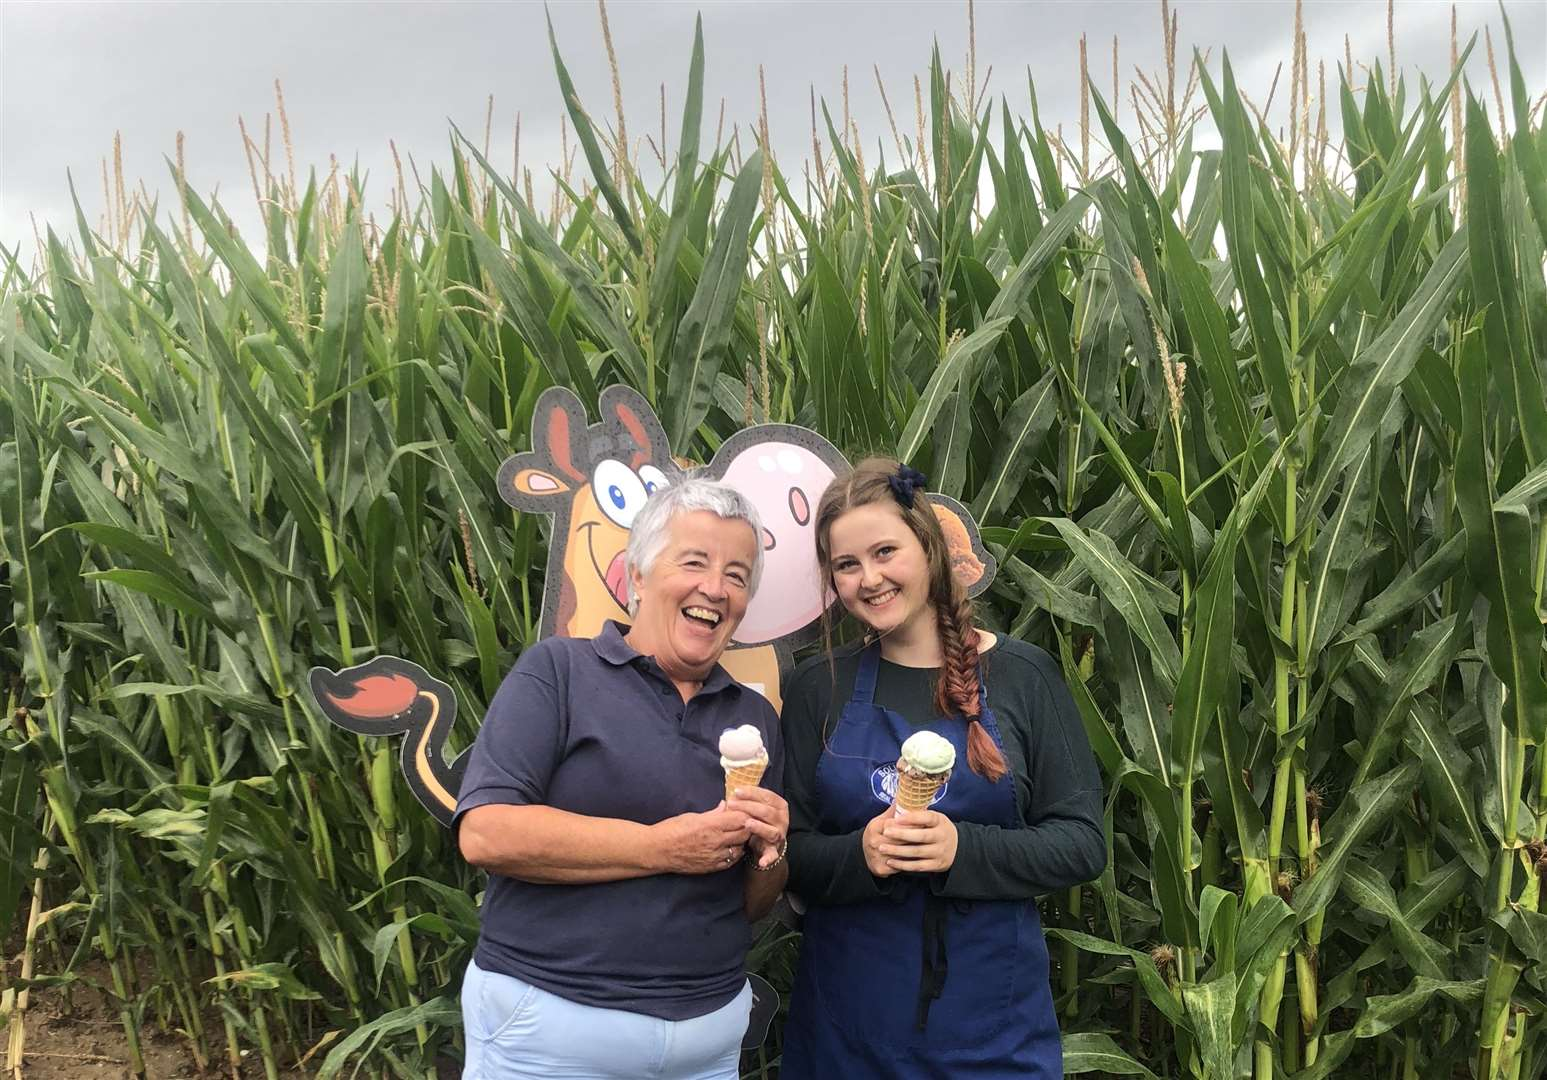 Kathy Wood and Honey Harrop enjoy an ice cream in front of the Maize Maze which will be open during the one-day festival